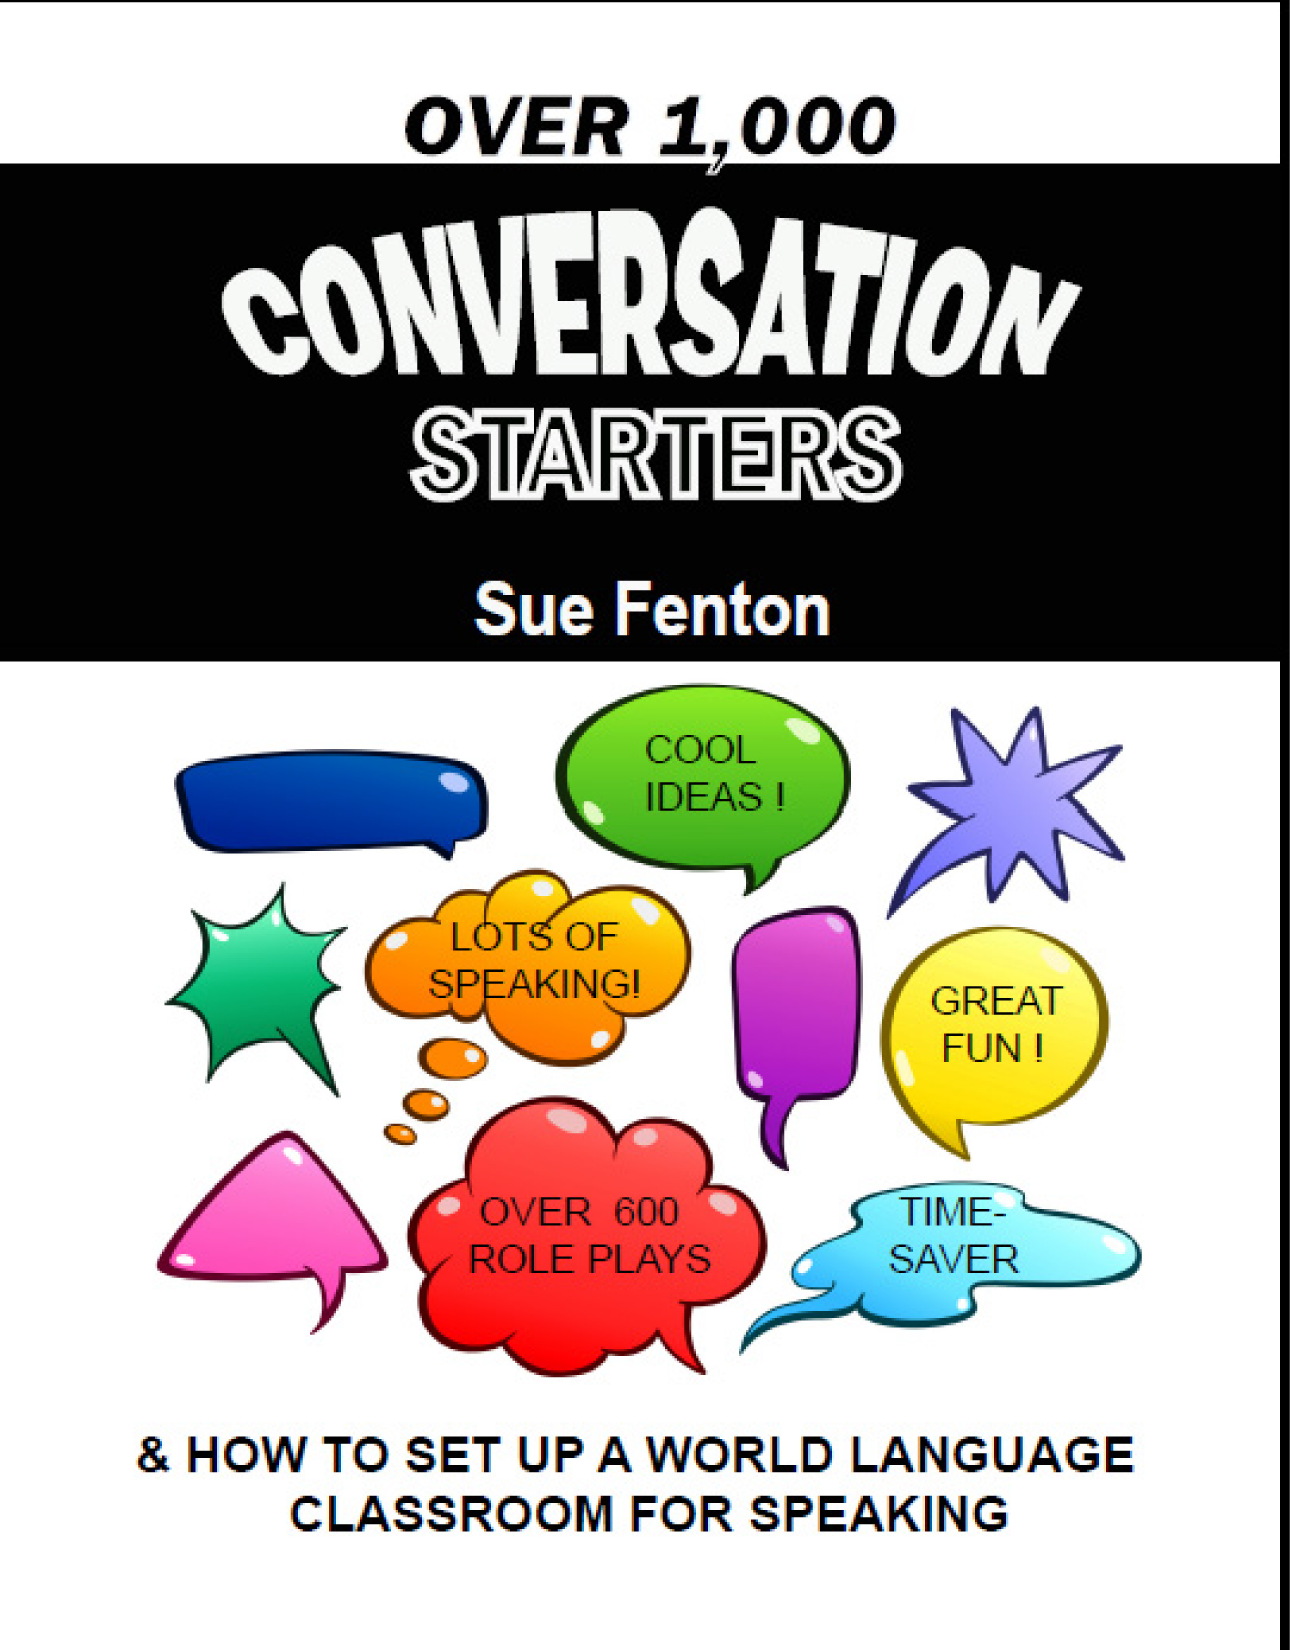 OVER 1,000 CONVERSATION STARTERS How to Set Up a Speaking Class